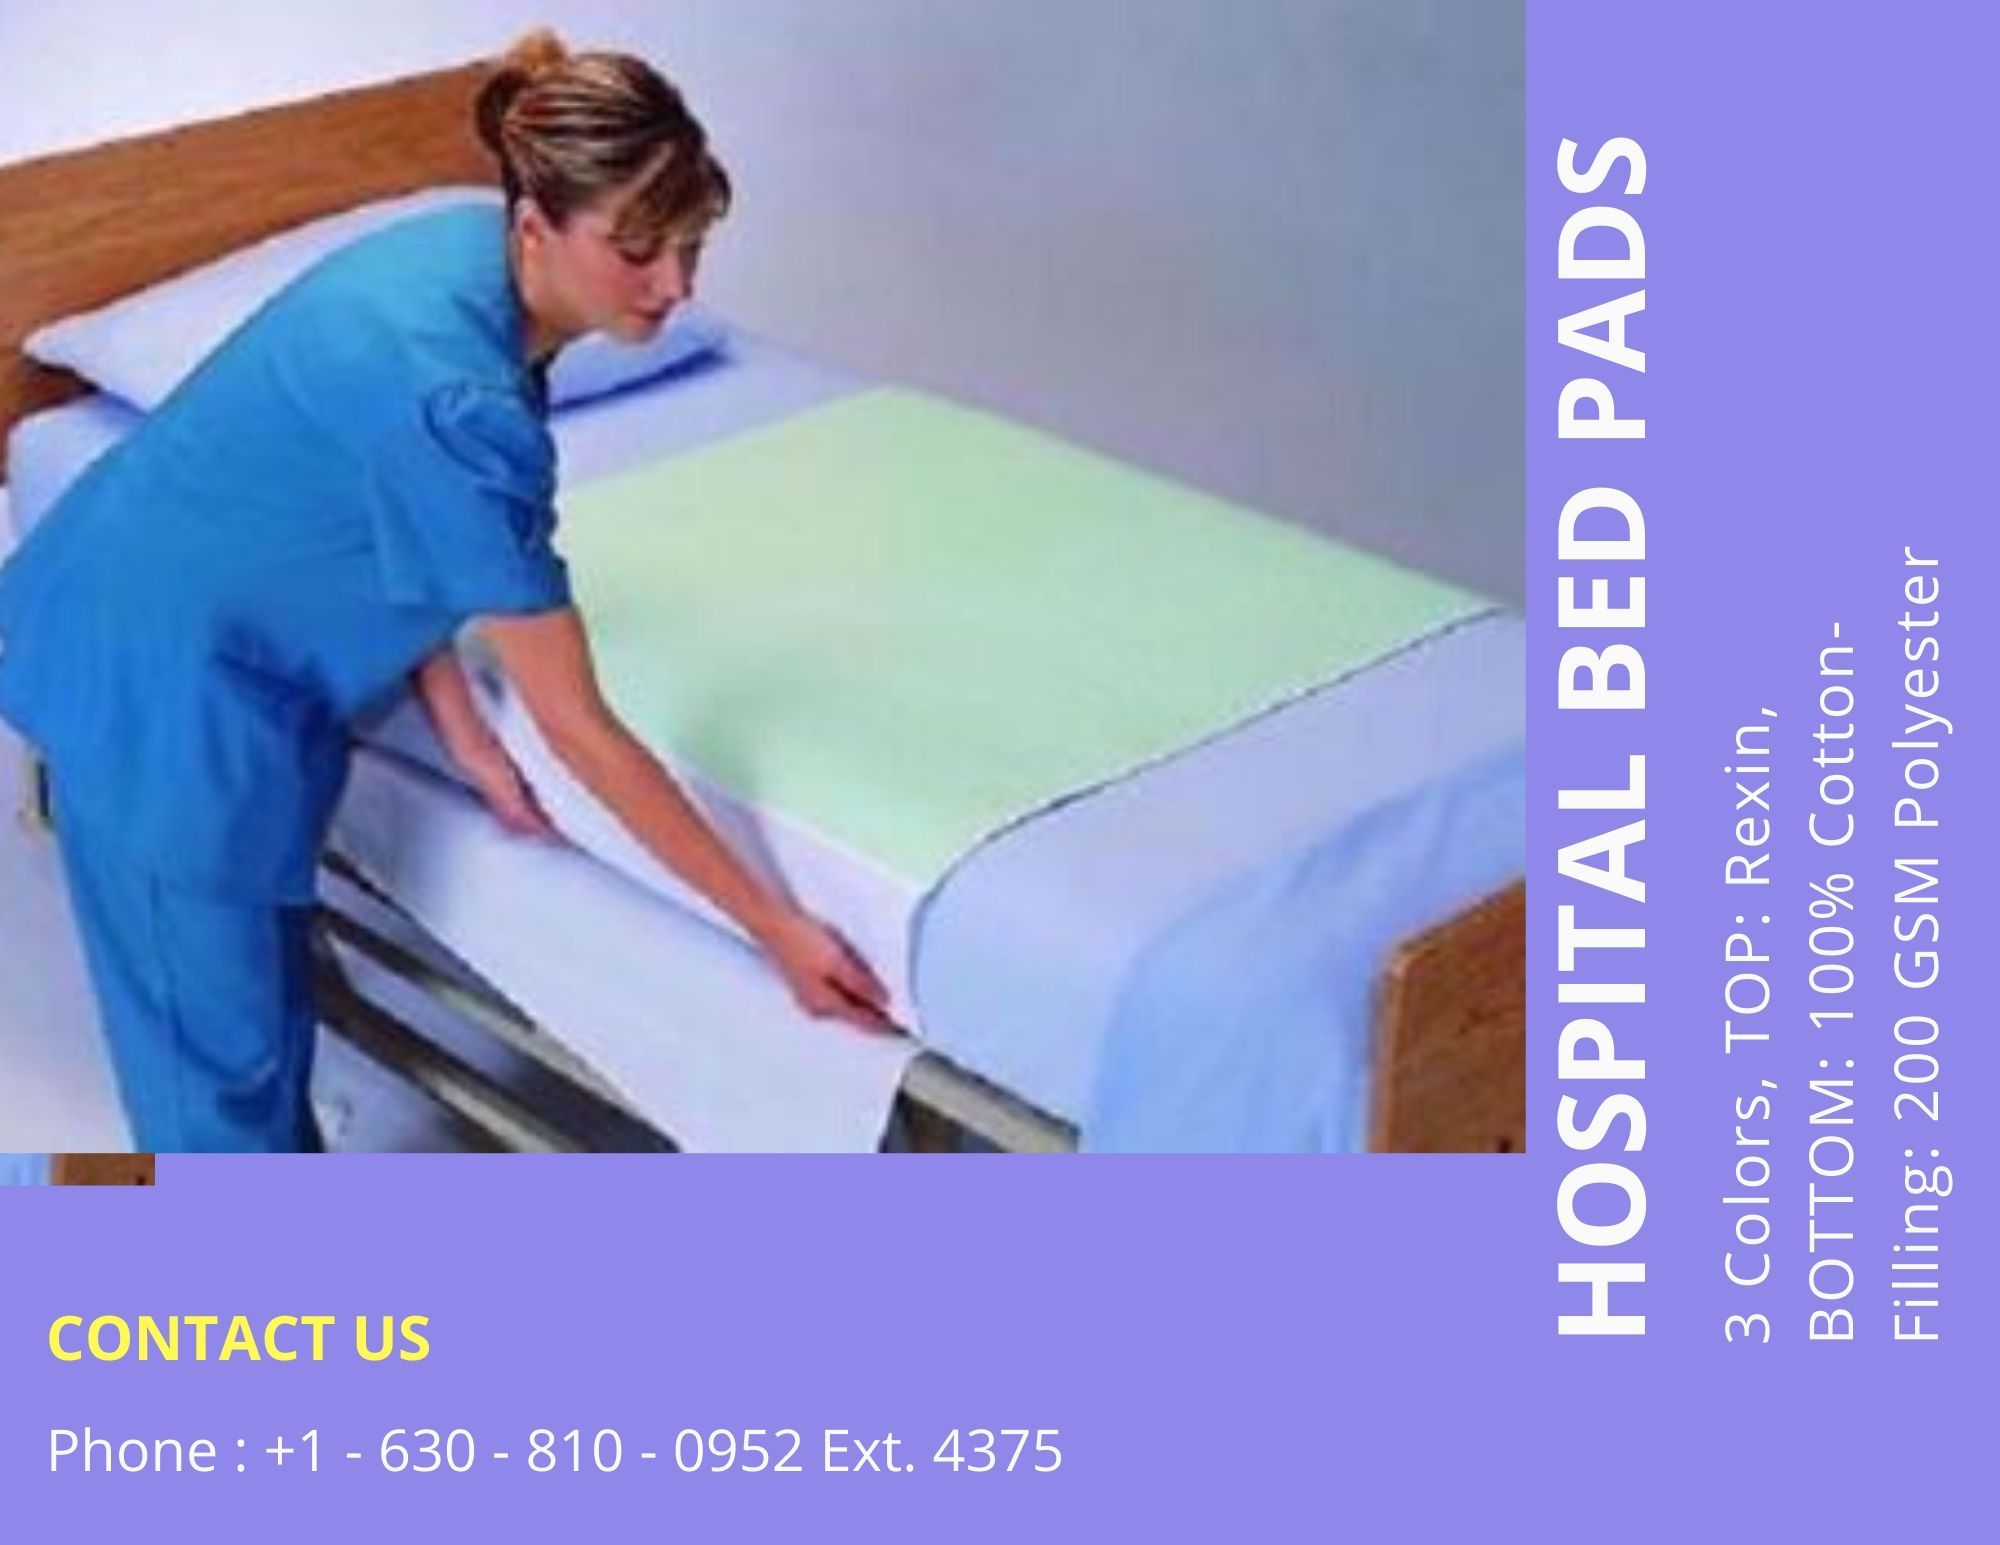 Hospital Bed Pads 32 X 34 Price 12 Each Bed Pads Hospital